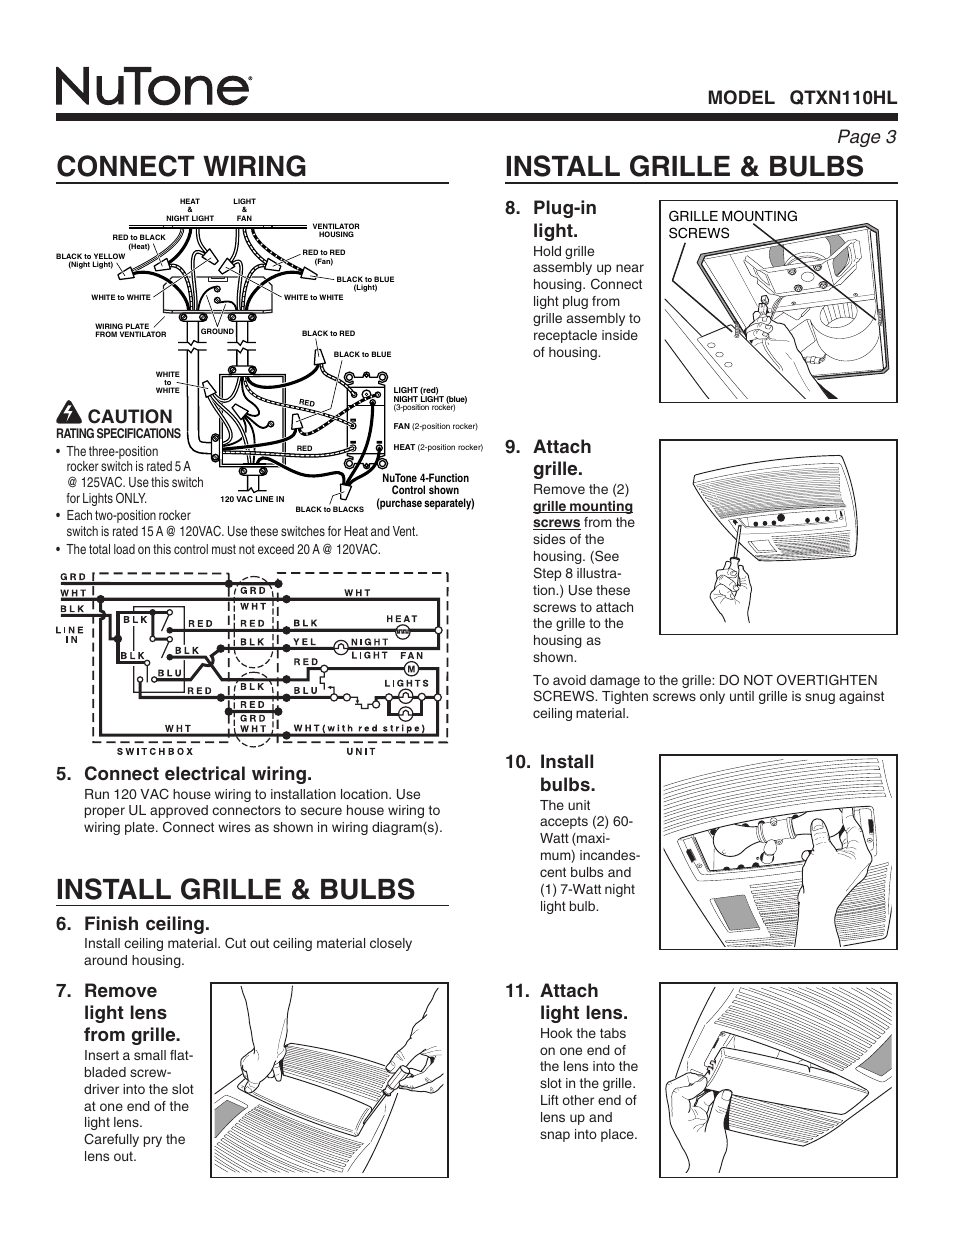 Install Grille Bulbs Connect Wiring Page Electrical Diagrams Residential Elevator 3 Nutone Qtxn110hl User Manual 8